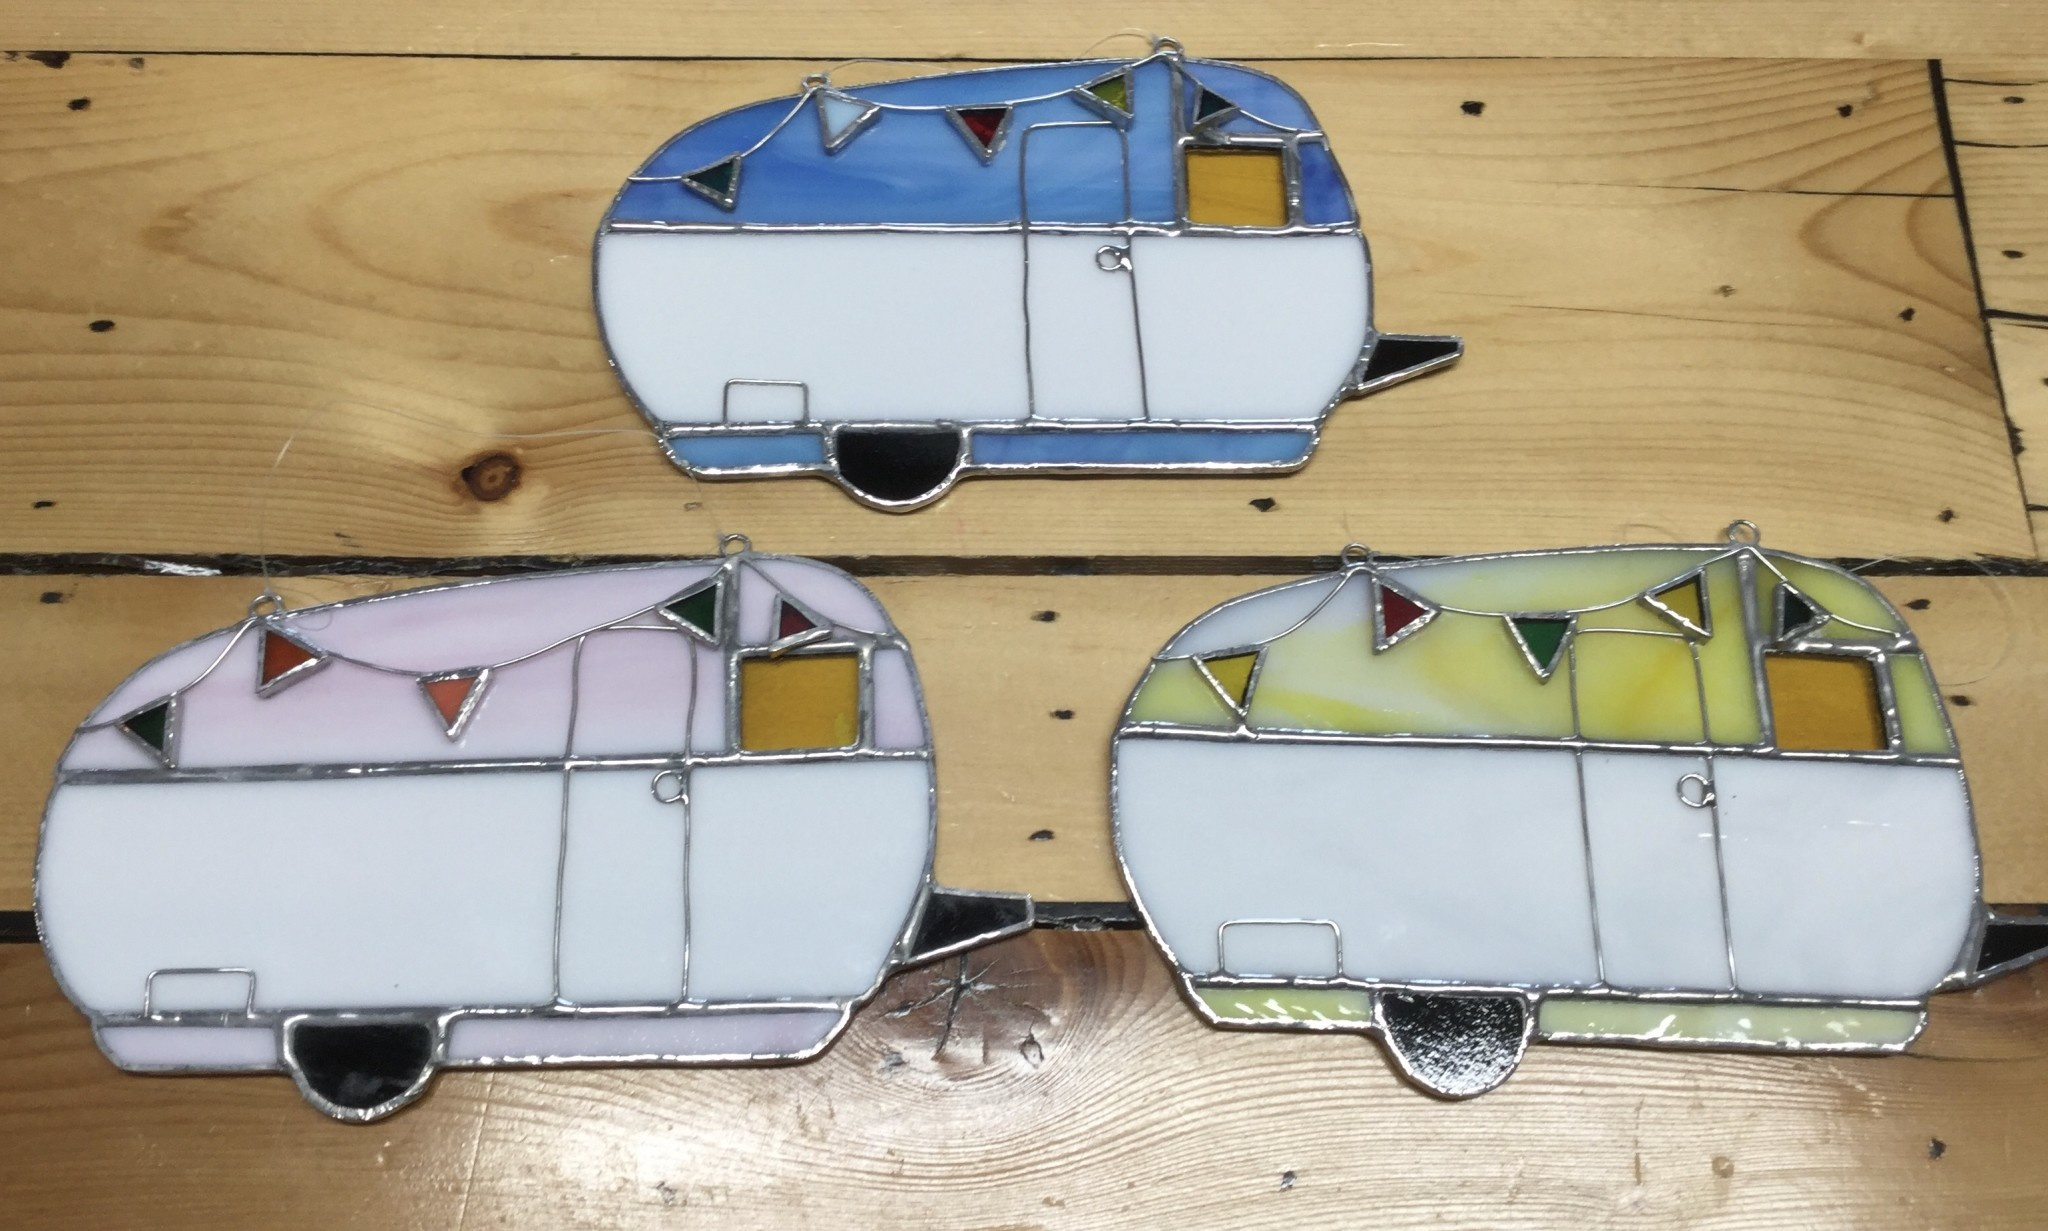 Stained Glass Camper